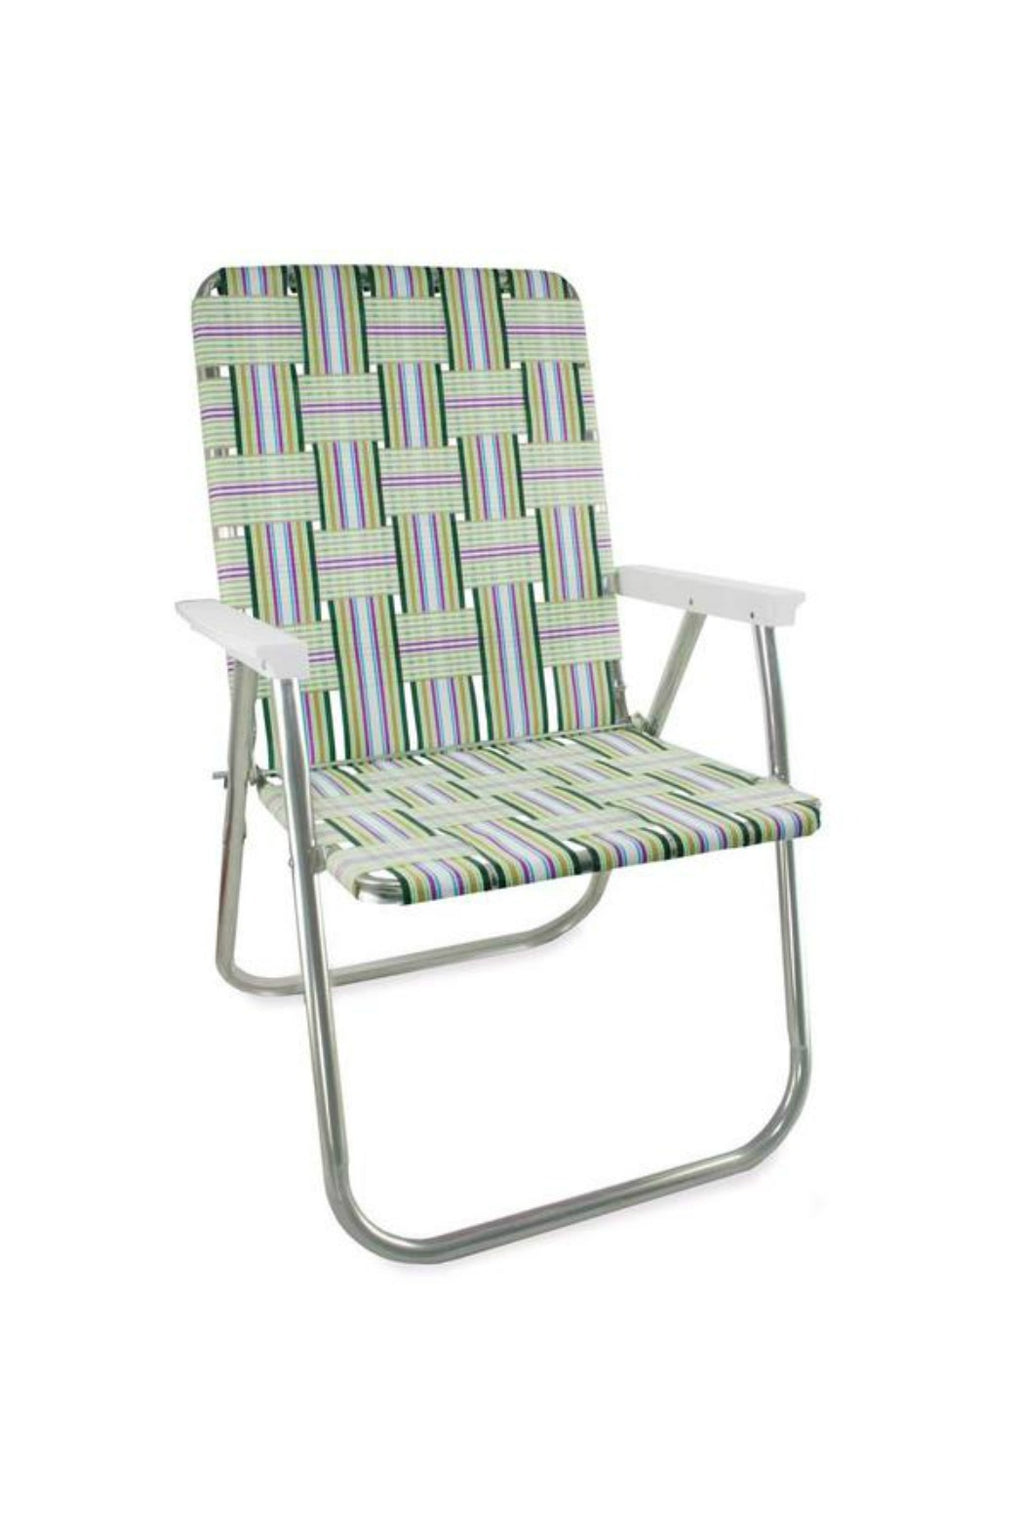 Classic Lawn Chair - Spring Fling